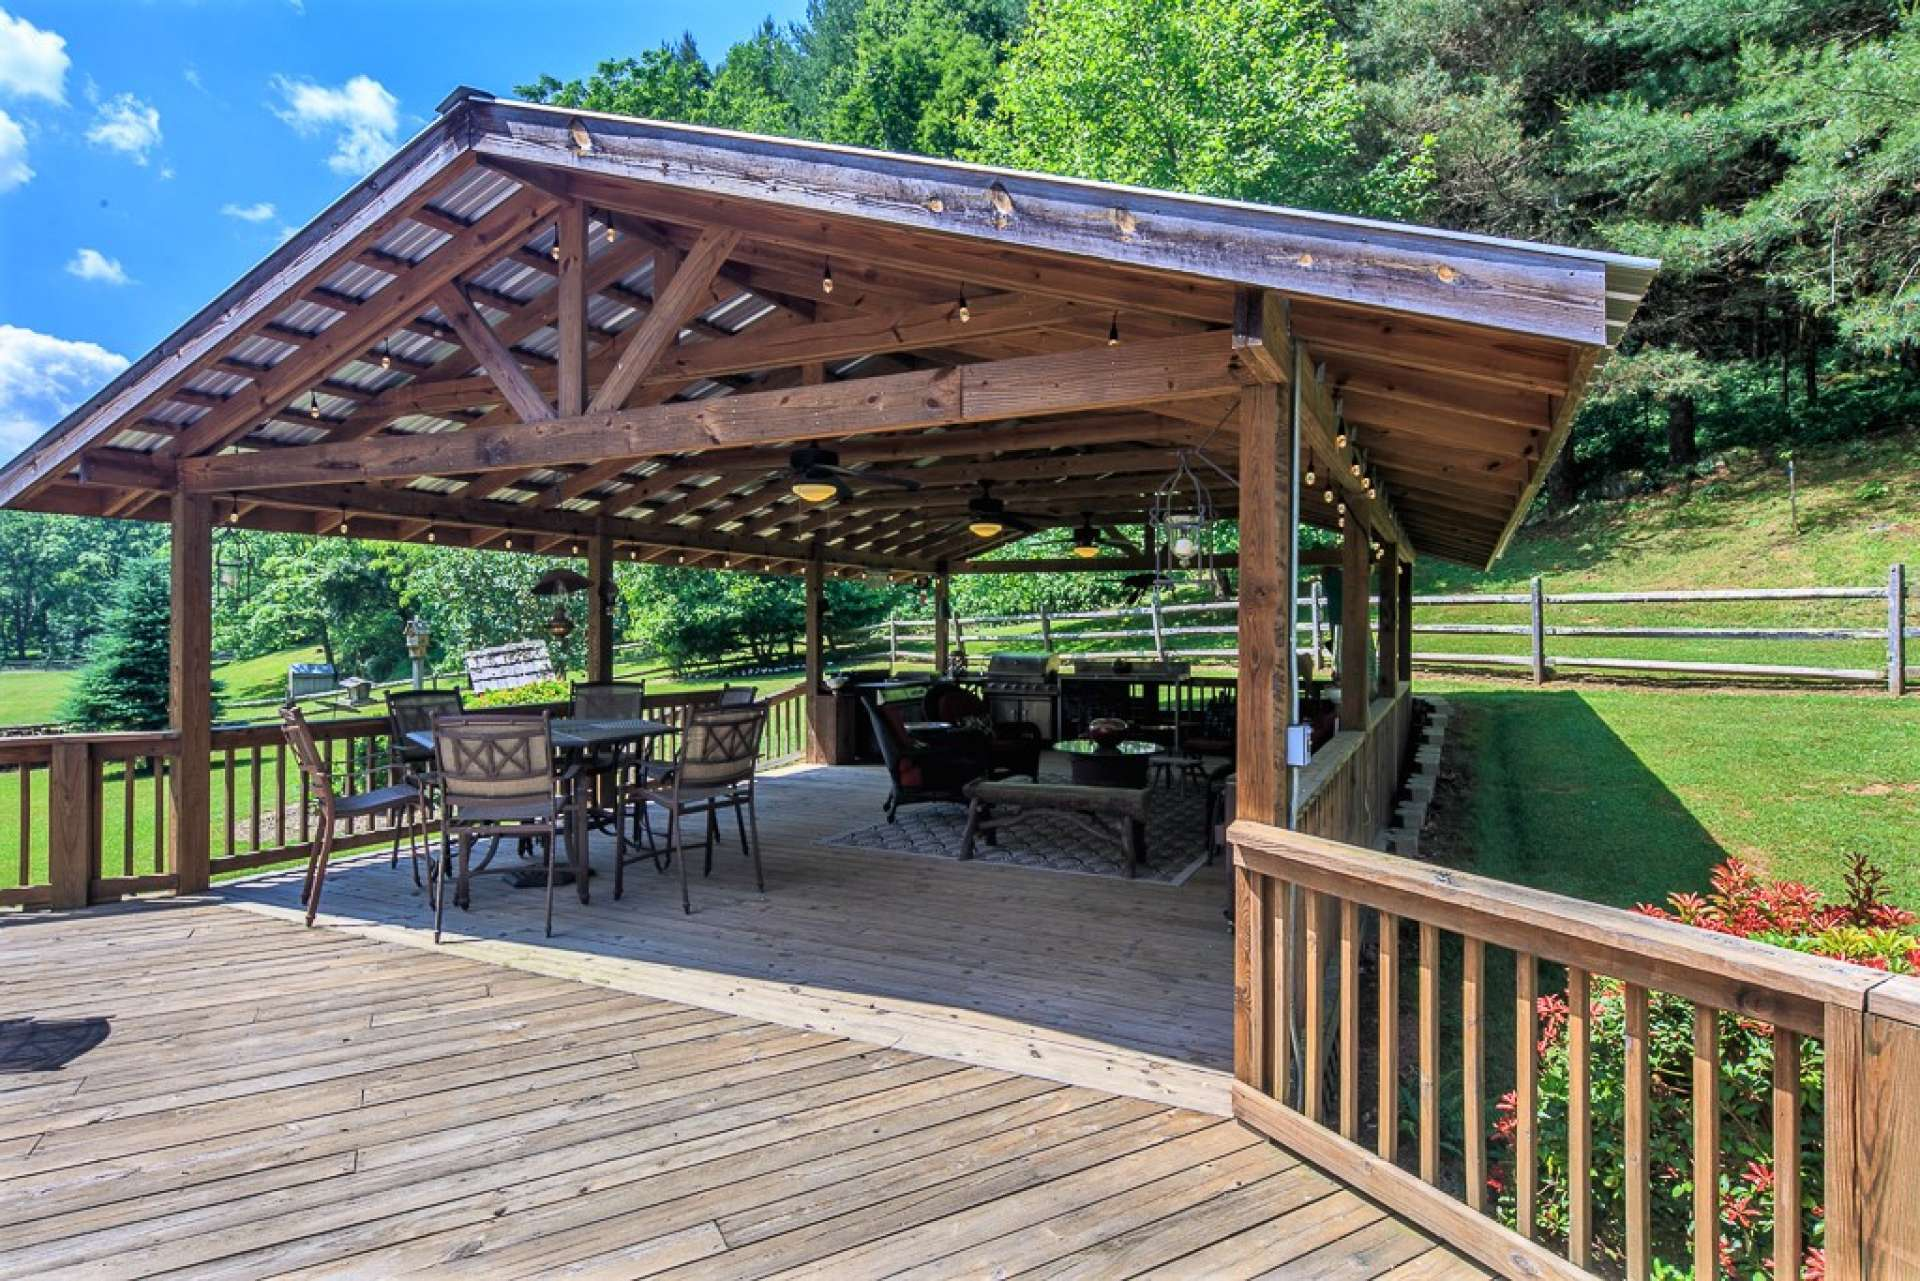 This home is an entertainers dream! In addition to the indoor entertaining space, this incredible outdoor summer kitchen offers over 600 square feet of covered entertaining space.